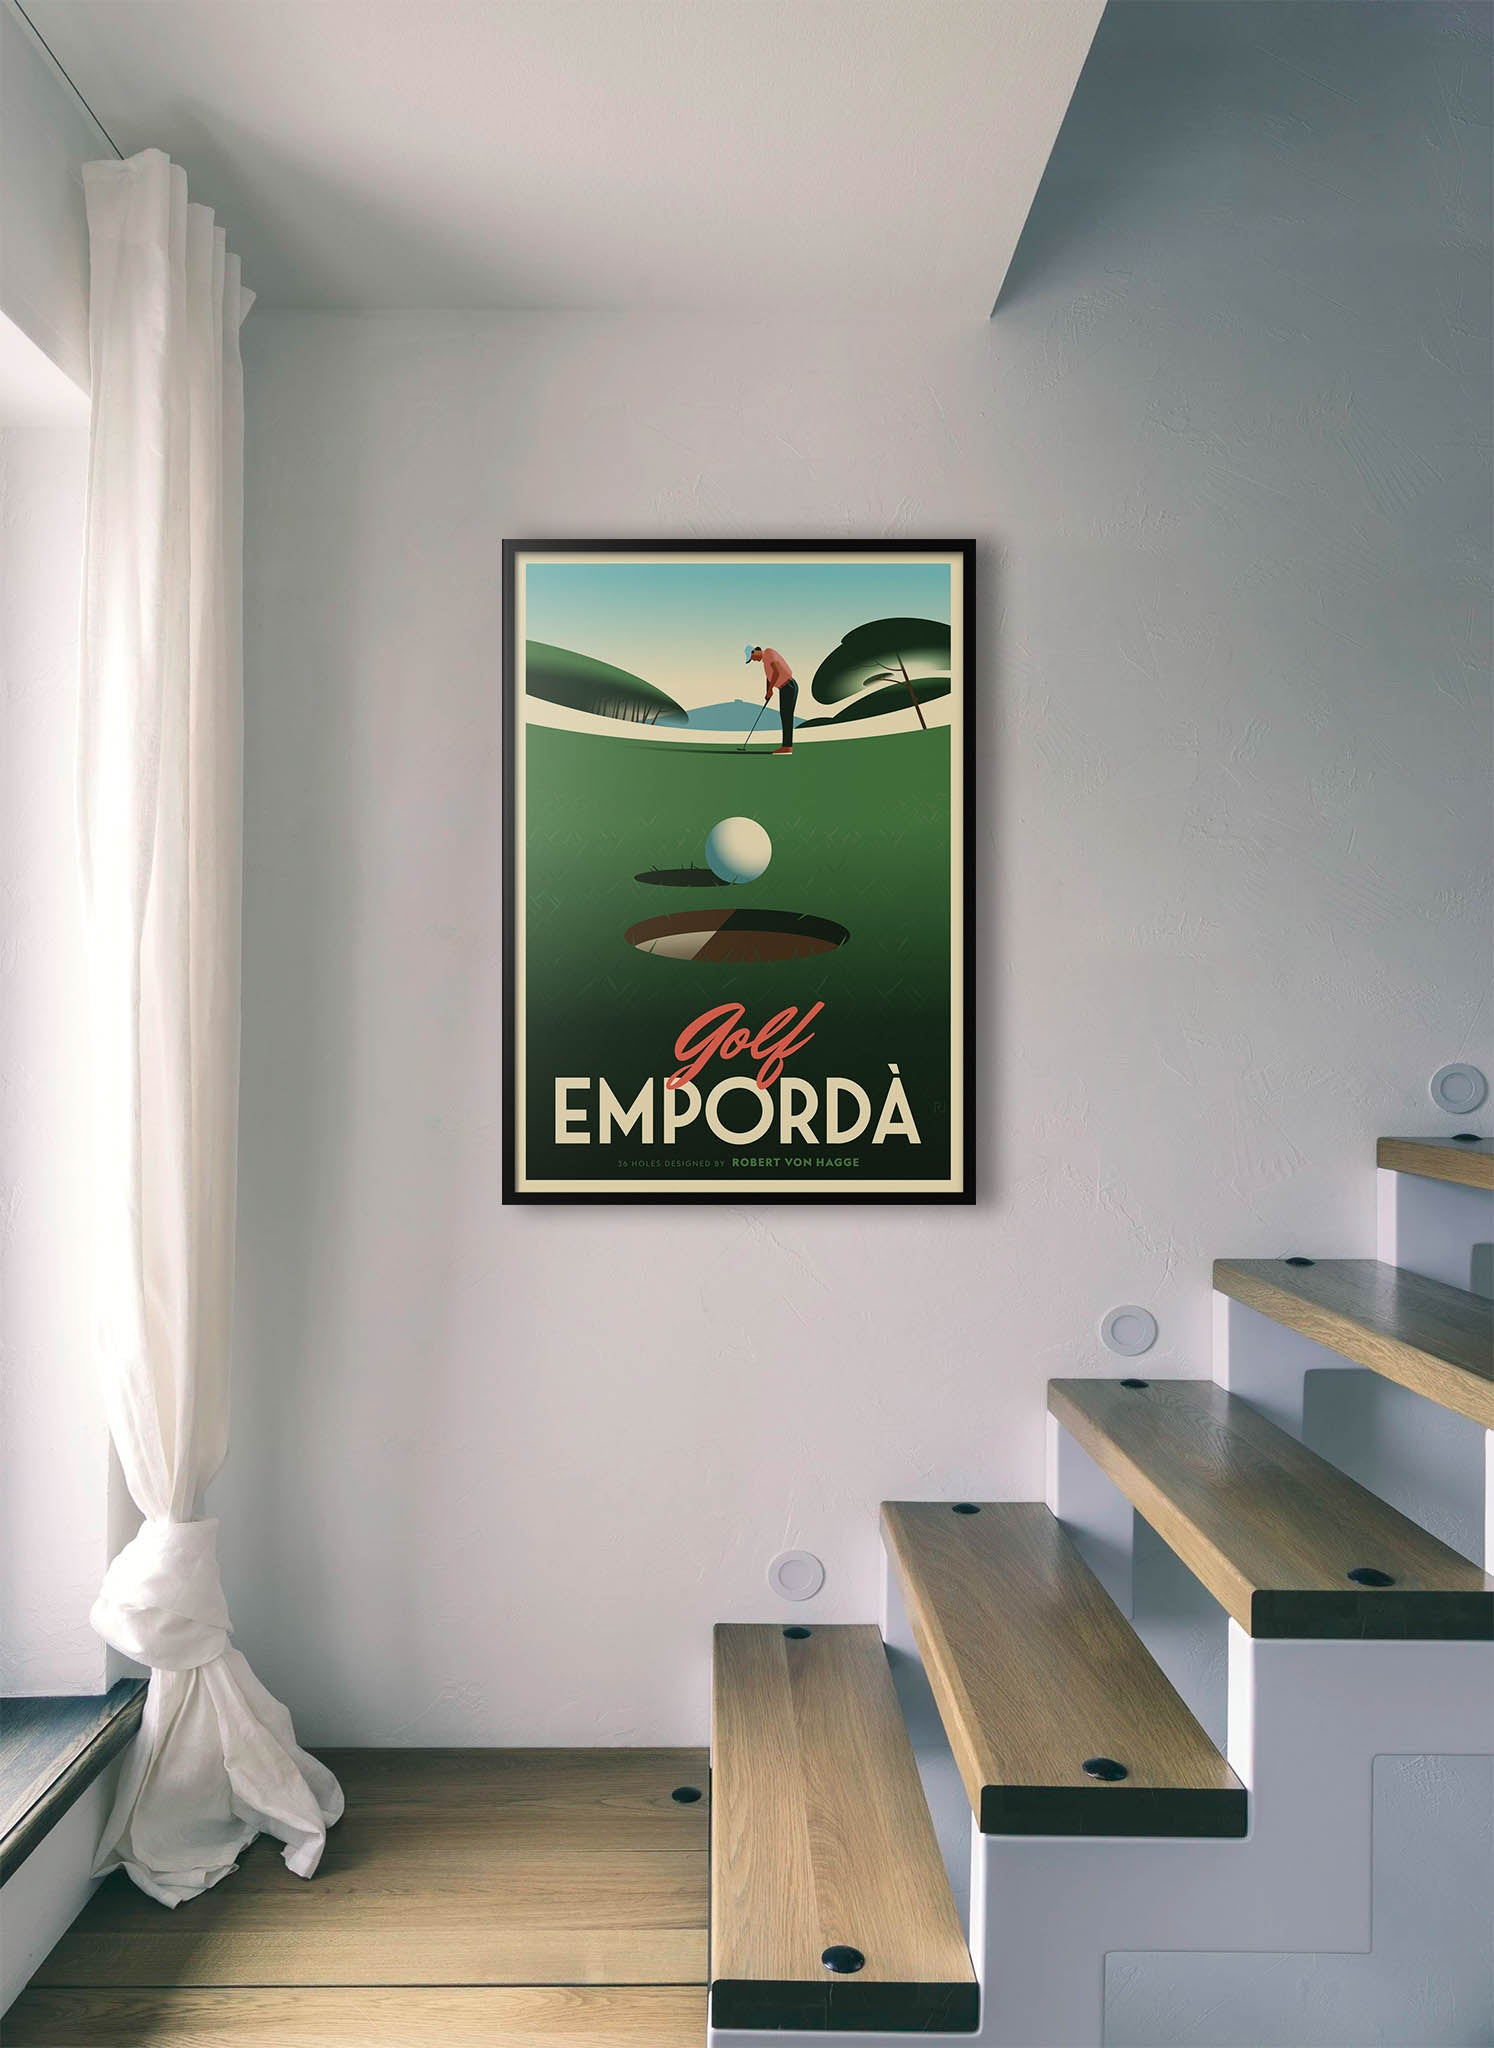 A golf ball in a hole after putting by Ricard Jorge.  Print without margin framed in black wood